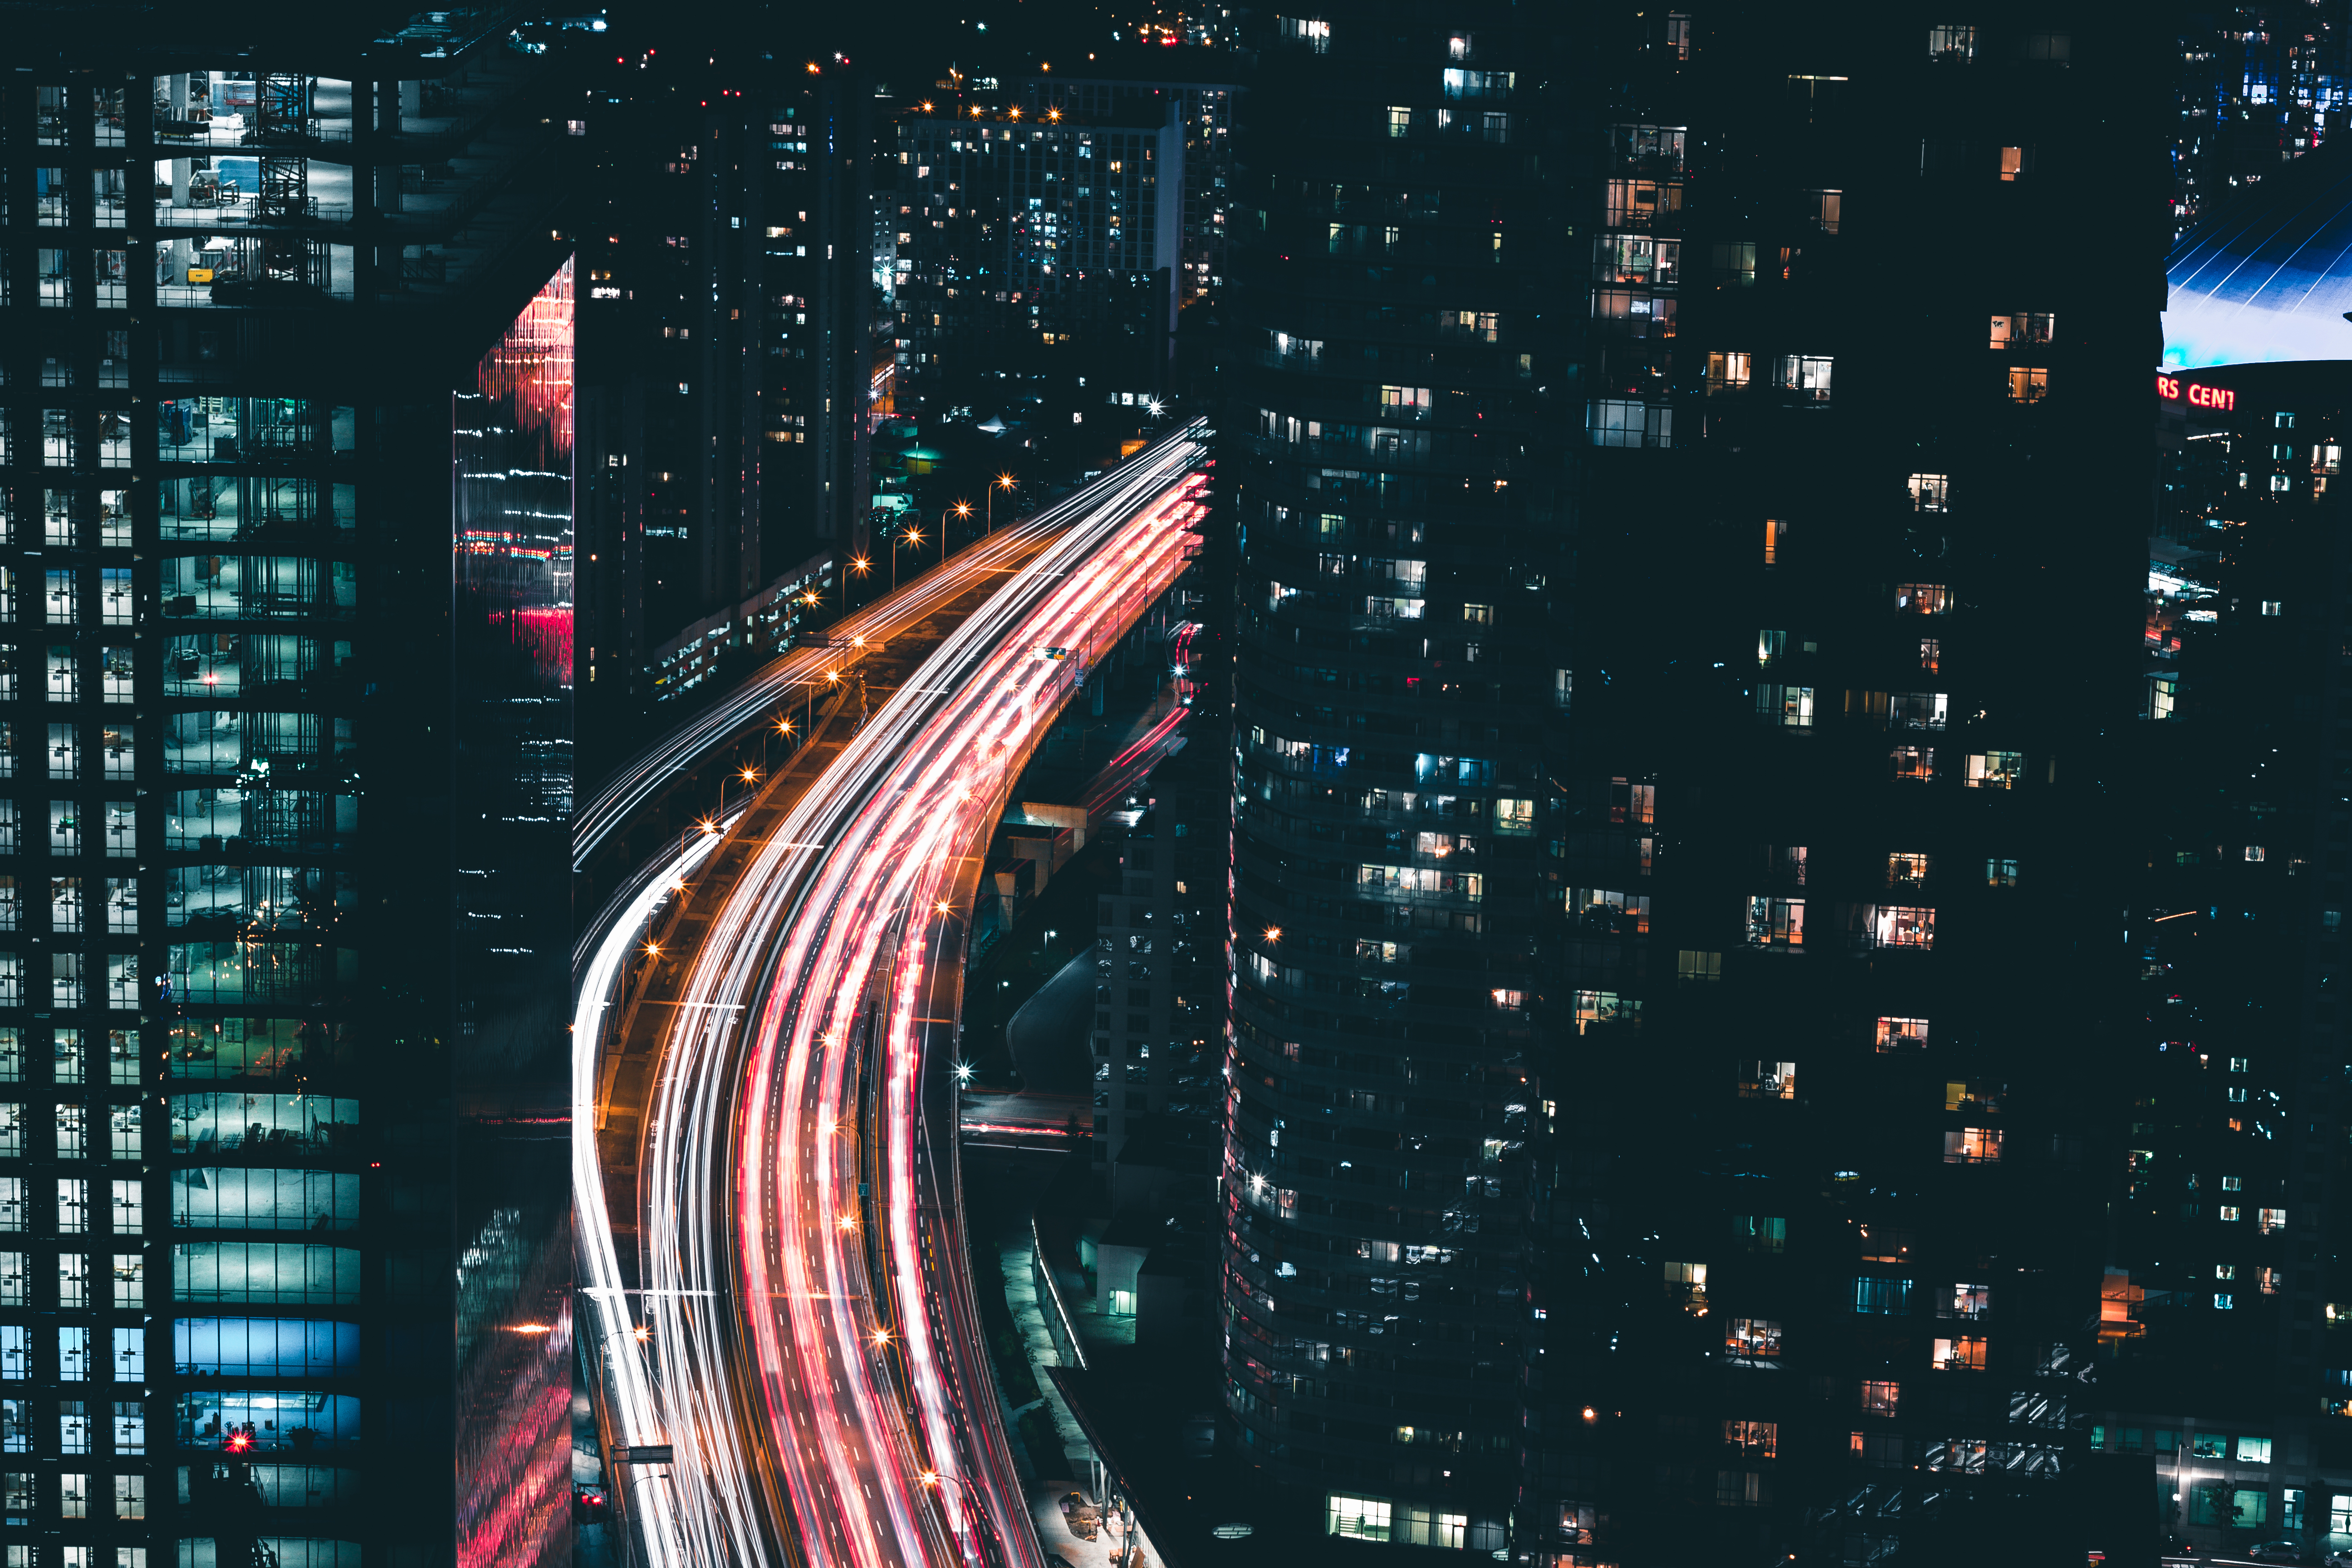 All White Cars Wallpaper Time Lapse Cars On Fast Motion 183 Free Stock Photo